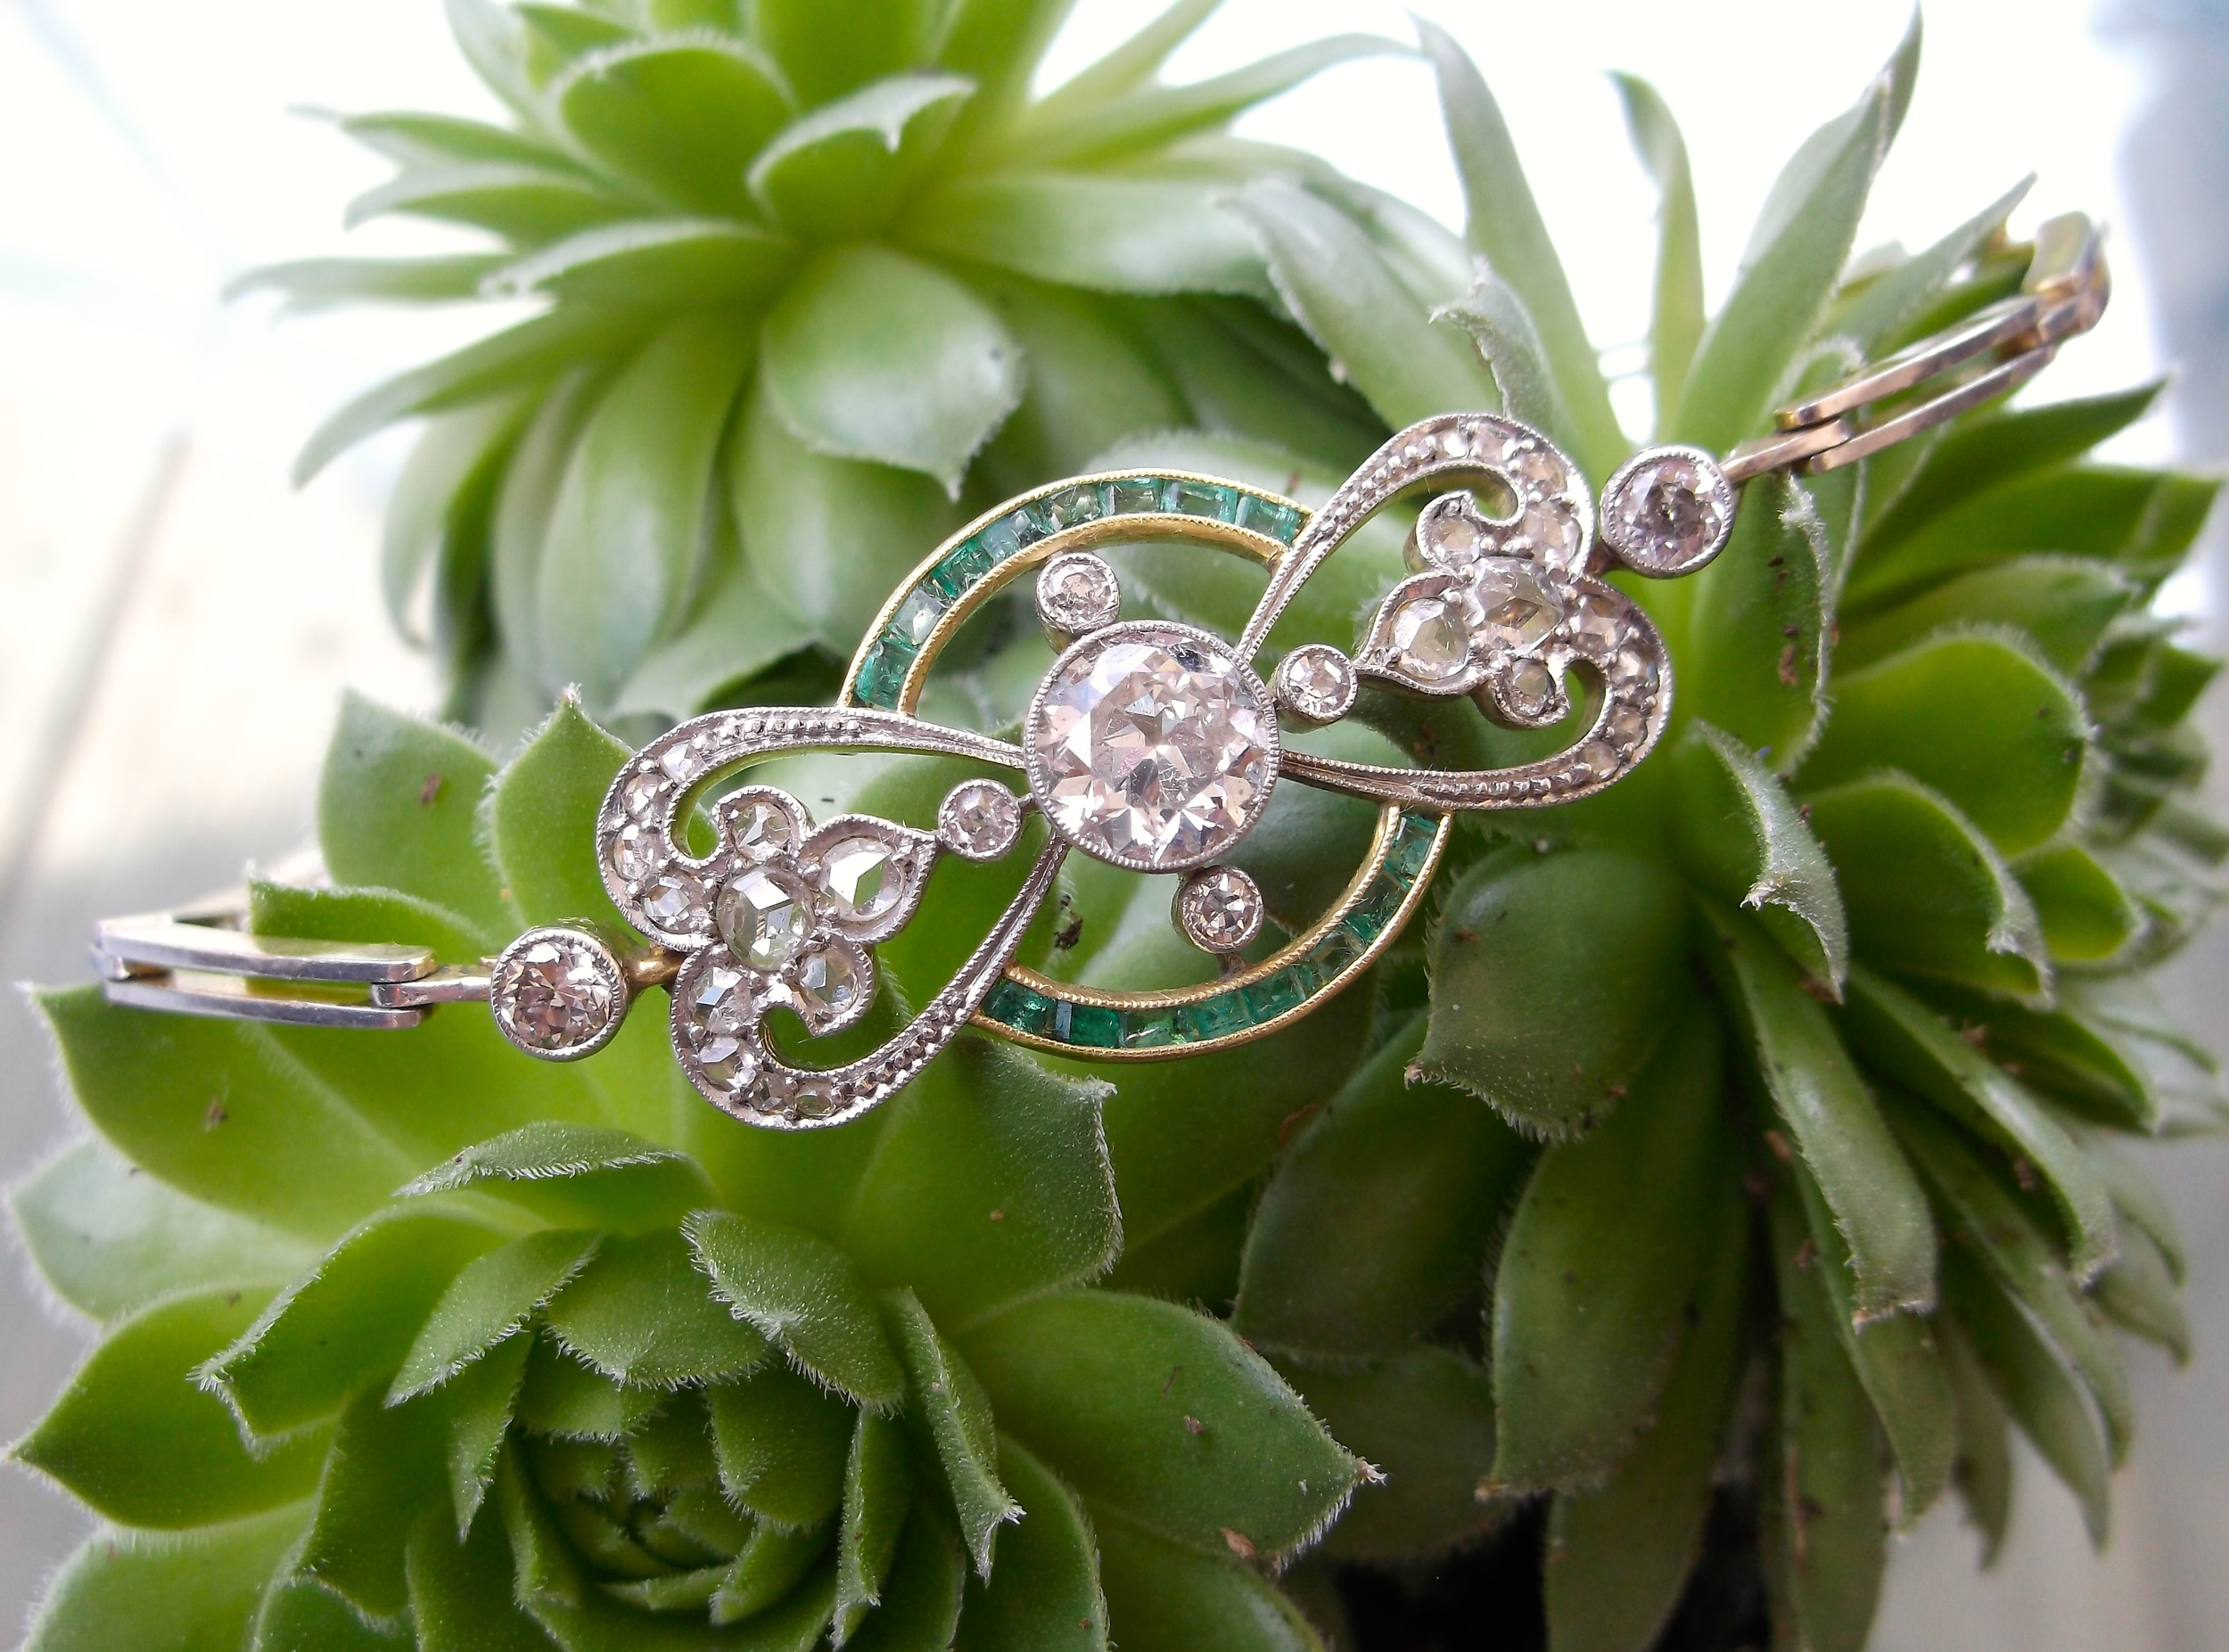 SOLD - tunning Edwardian Era Old European cut diamond and emerald detail bracelet set in platinum topped gold with a 1.15 carat Old European cut diamond in the center.